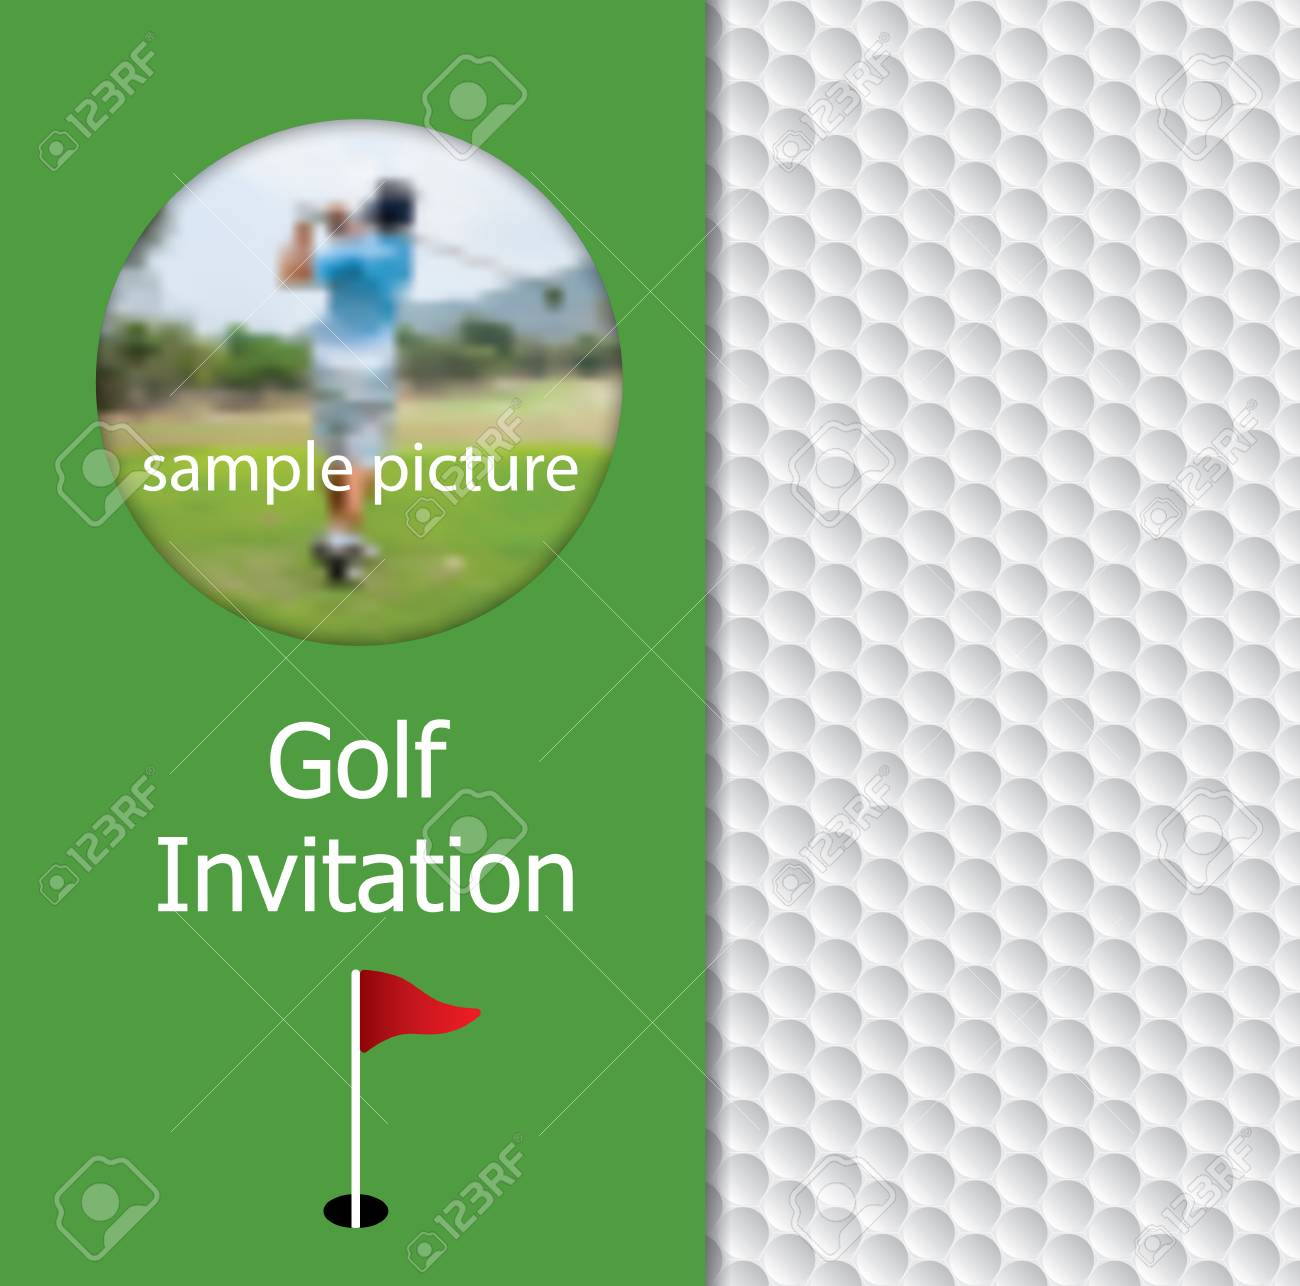 Golf Tournament Invitation Flyer Template Graphic Designvon Ball Pattern Texture And Sample Picture Stock